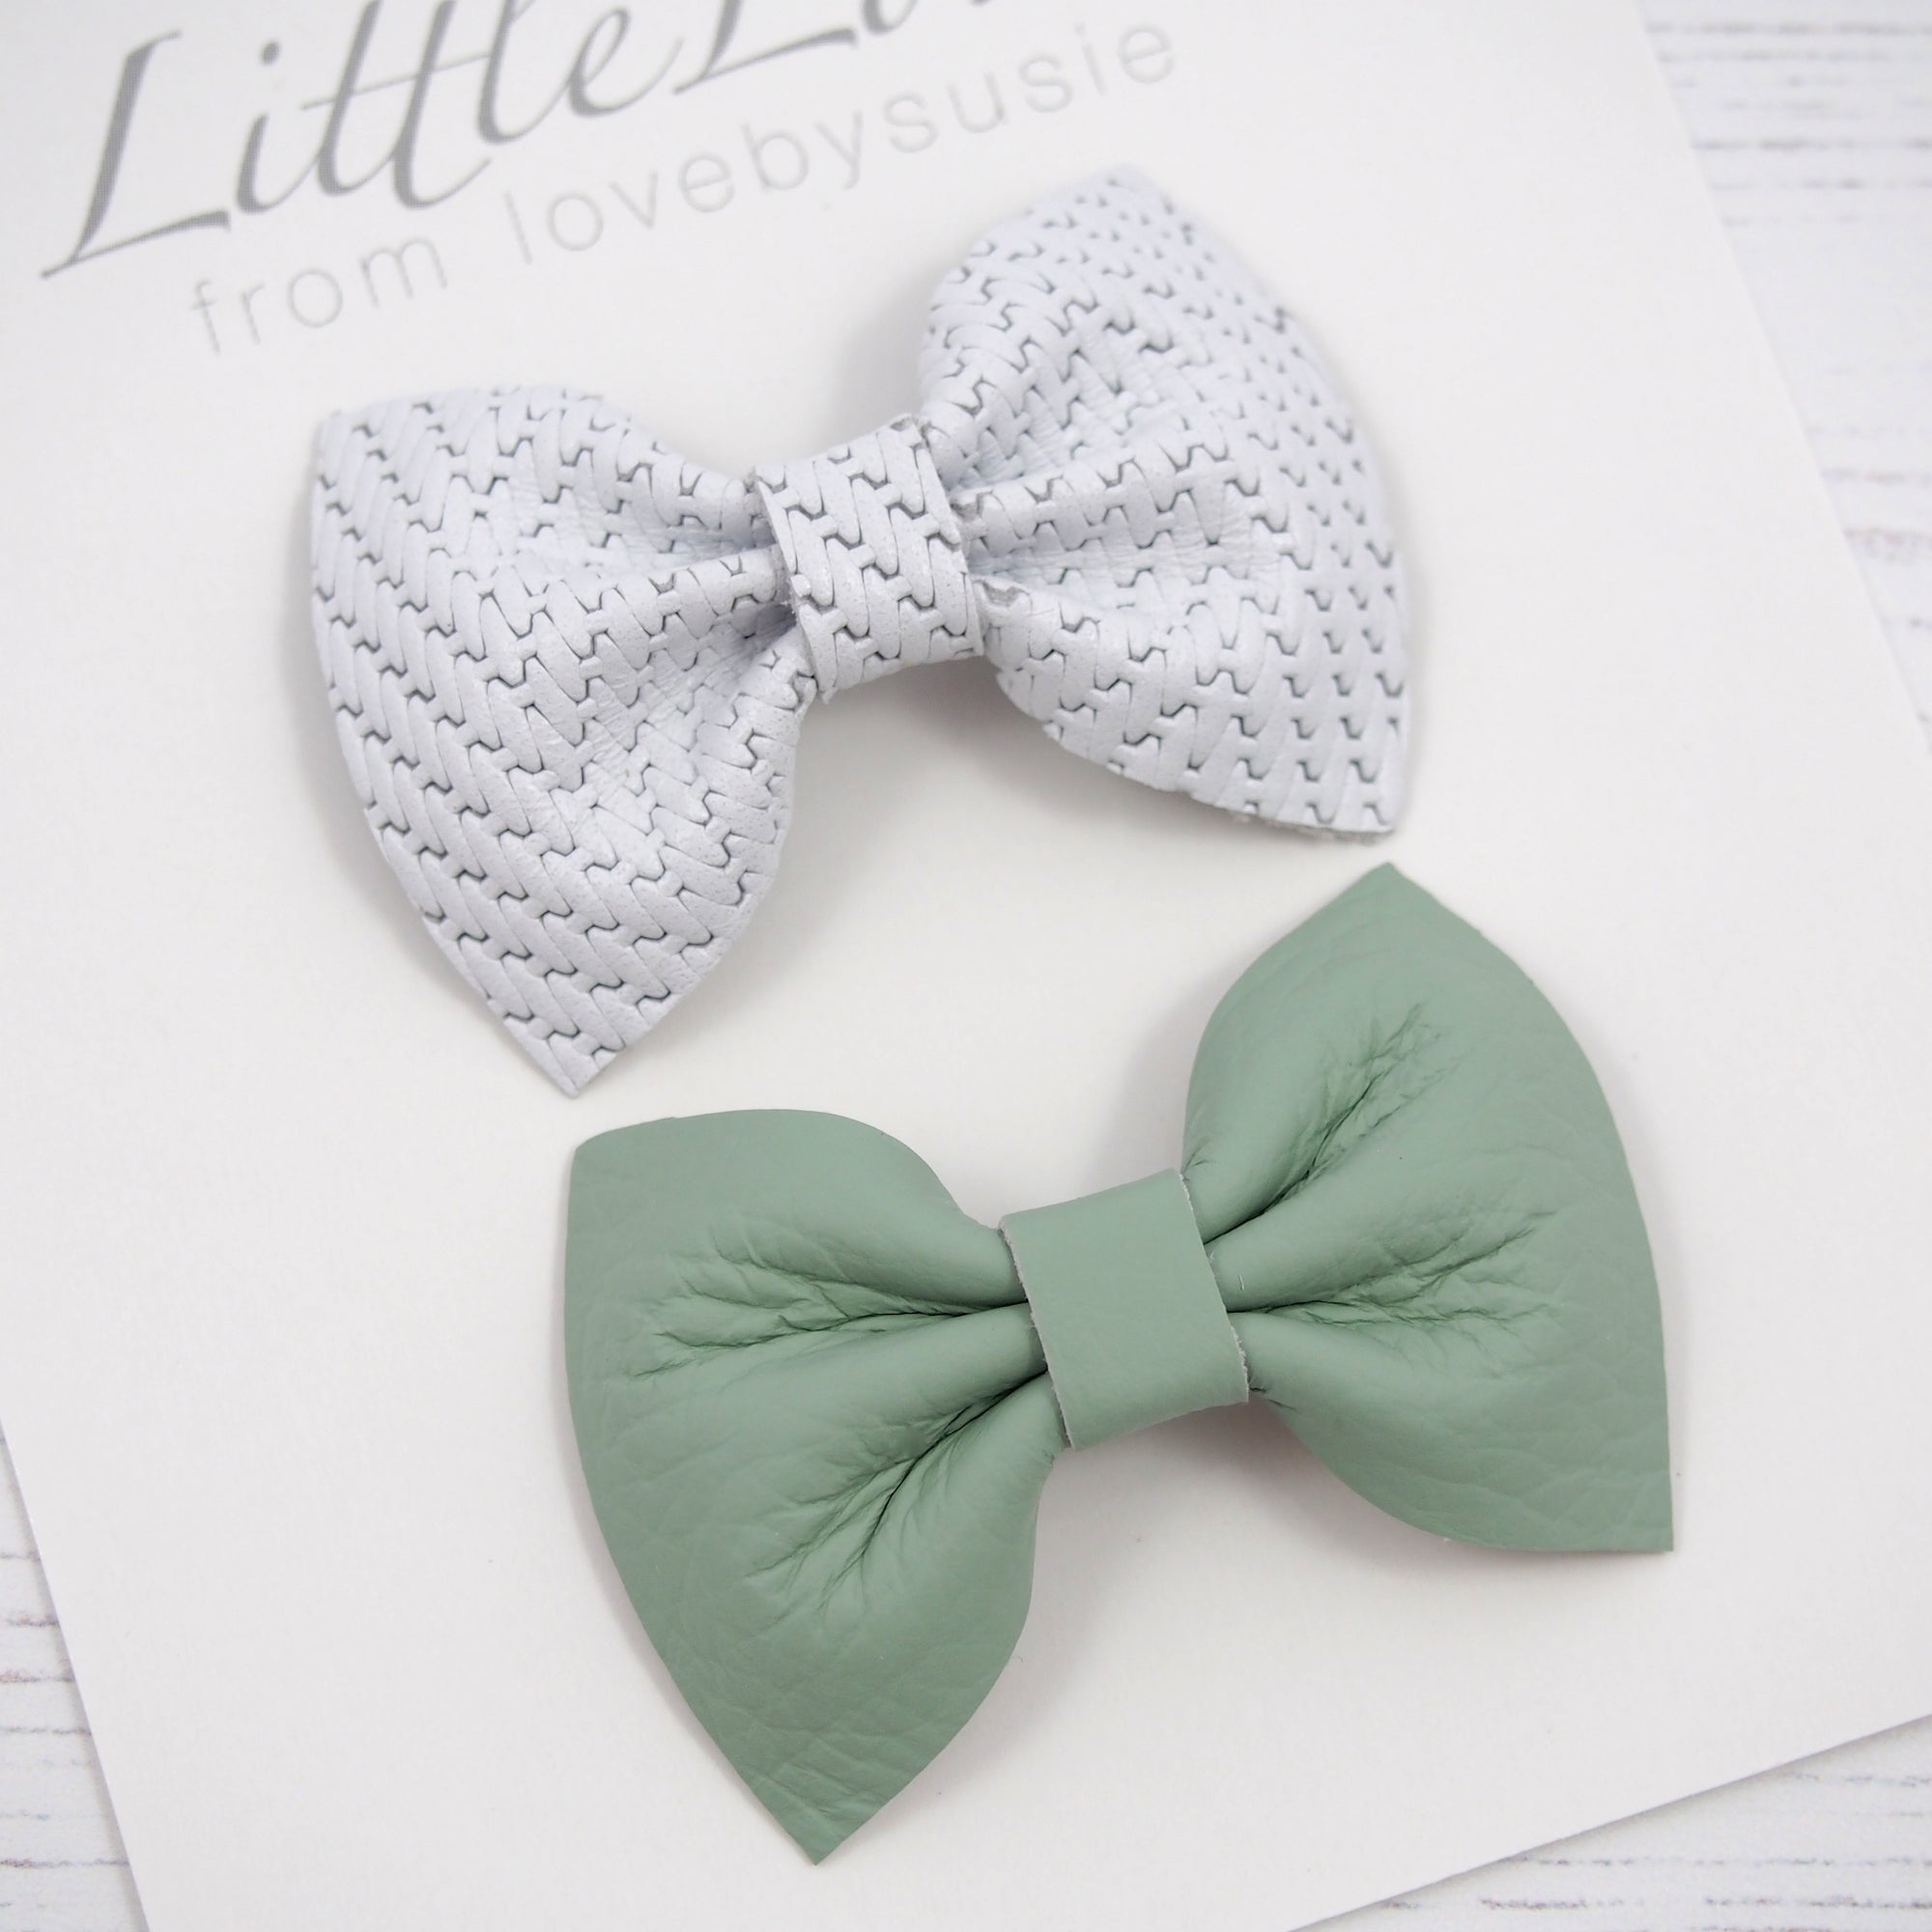 ... Baby or Toddler leather bow hair clip set in white and mint green  leather this Easter 97e873deab0